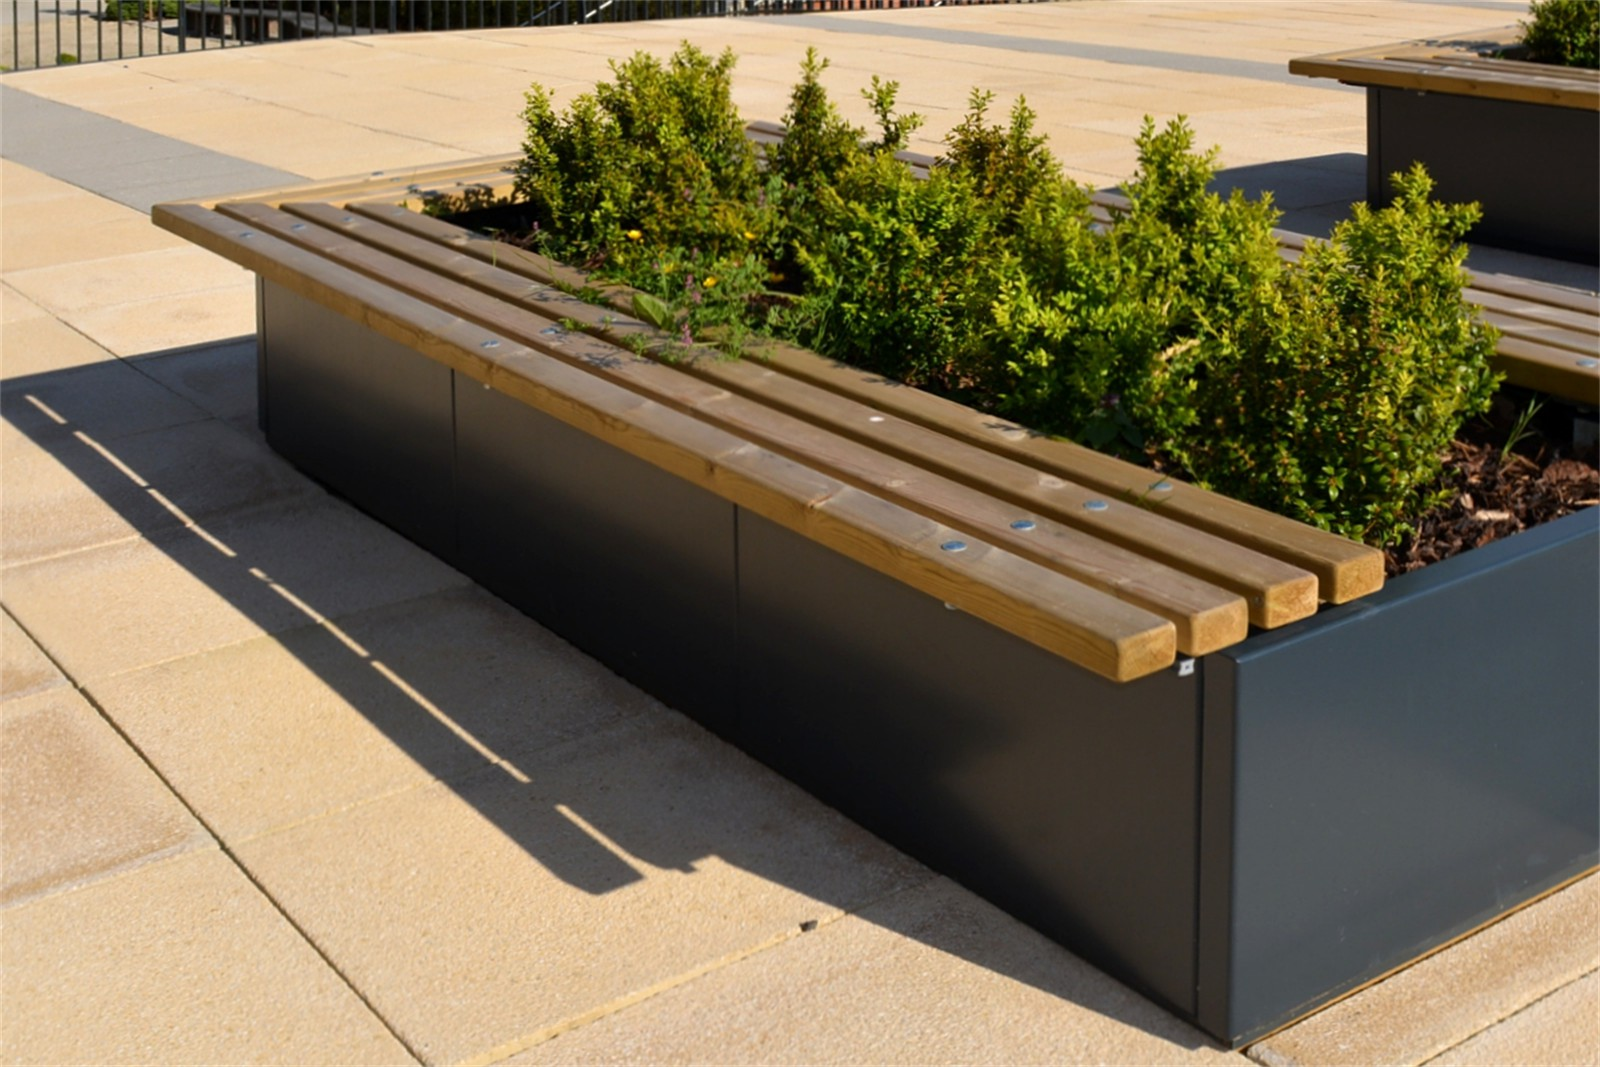 60sbe12 - Bexley top fixed planter benches